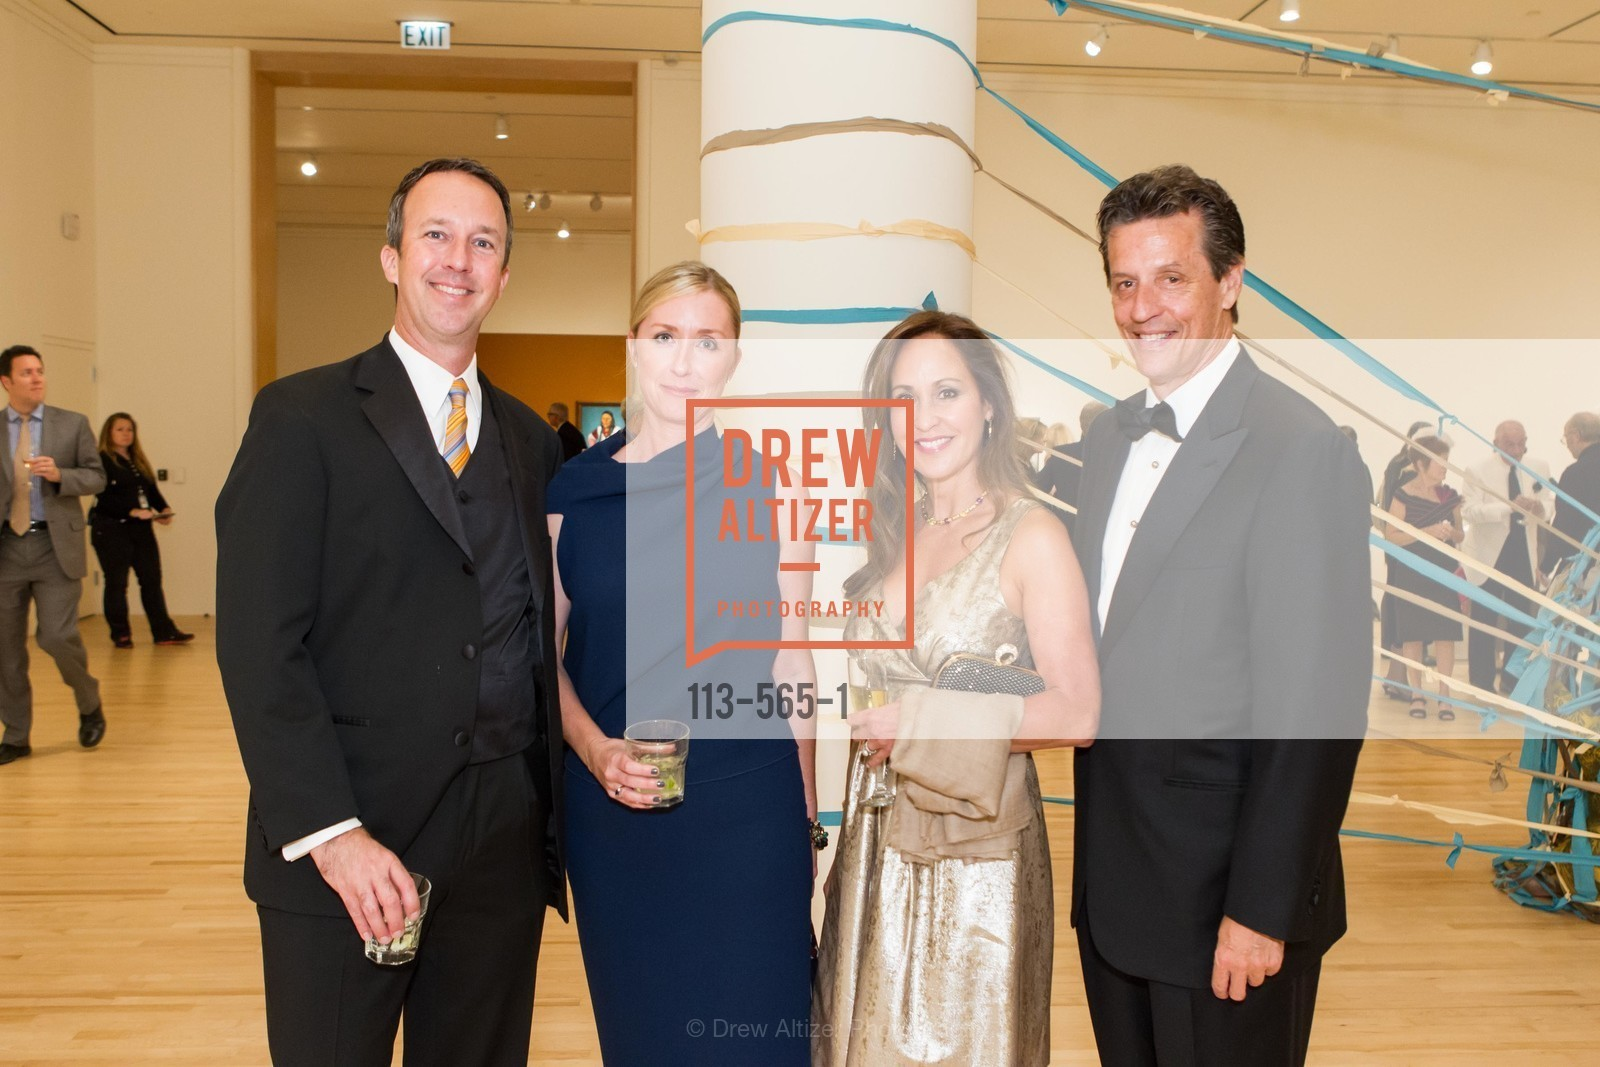 Tad Freese, Brooke Hartzell, Roxanne Fleming, David Soward, GLAAD GALA Kick-Off Party Hosted by SAKS FIFTH AVENUE, Saks Fifth Avenue. 384 Post Street, September 12th, 2014,Drew Altizer, Drew Altizer Photography, full-service agency, private events, San Francisco photographer, photographer california